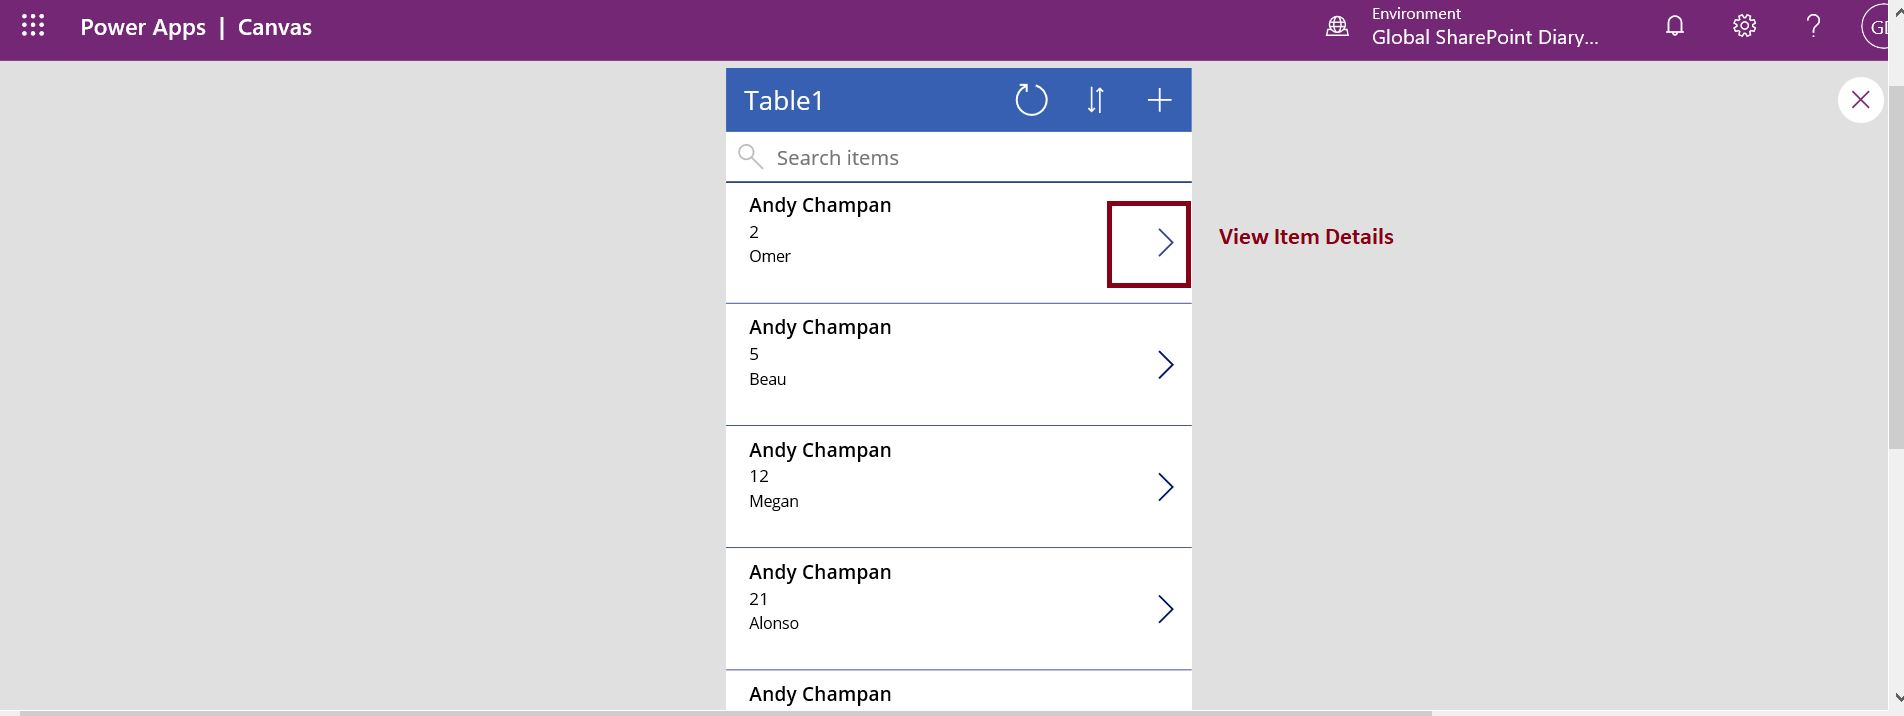 View Item Details button in PowerApps model driven app